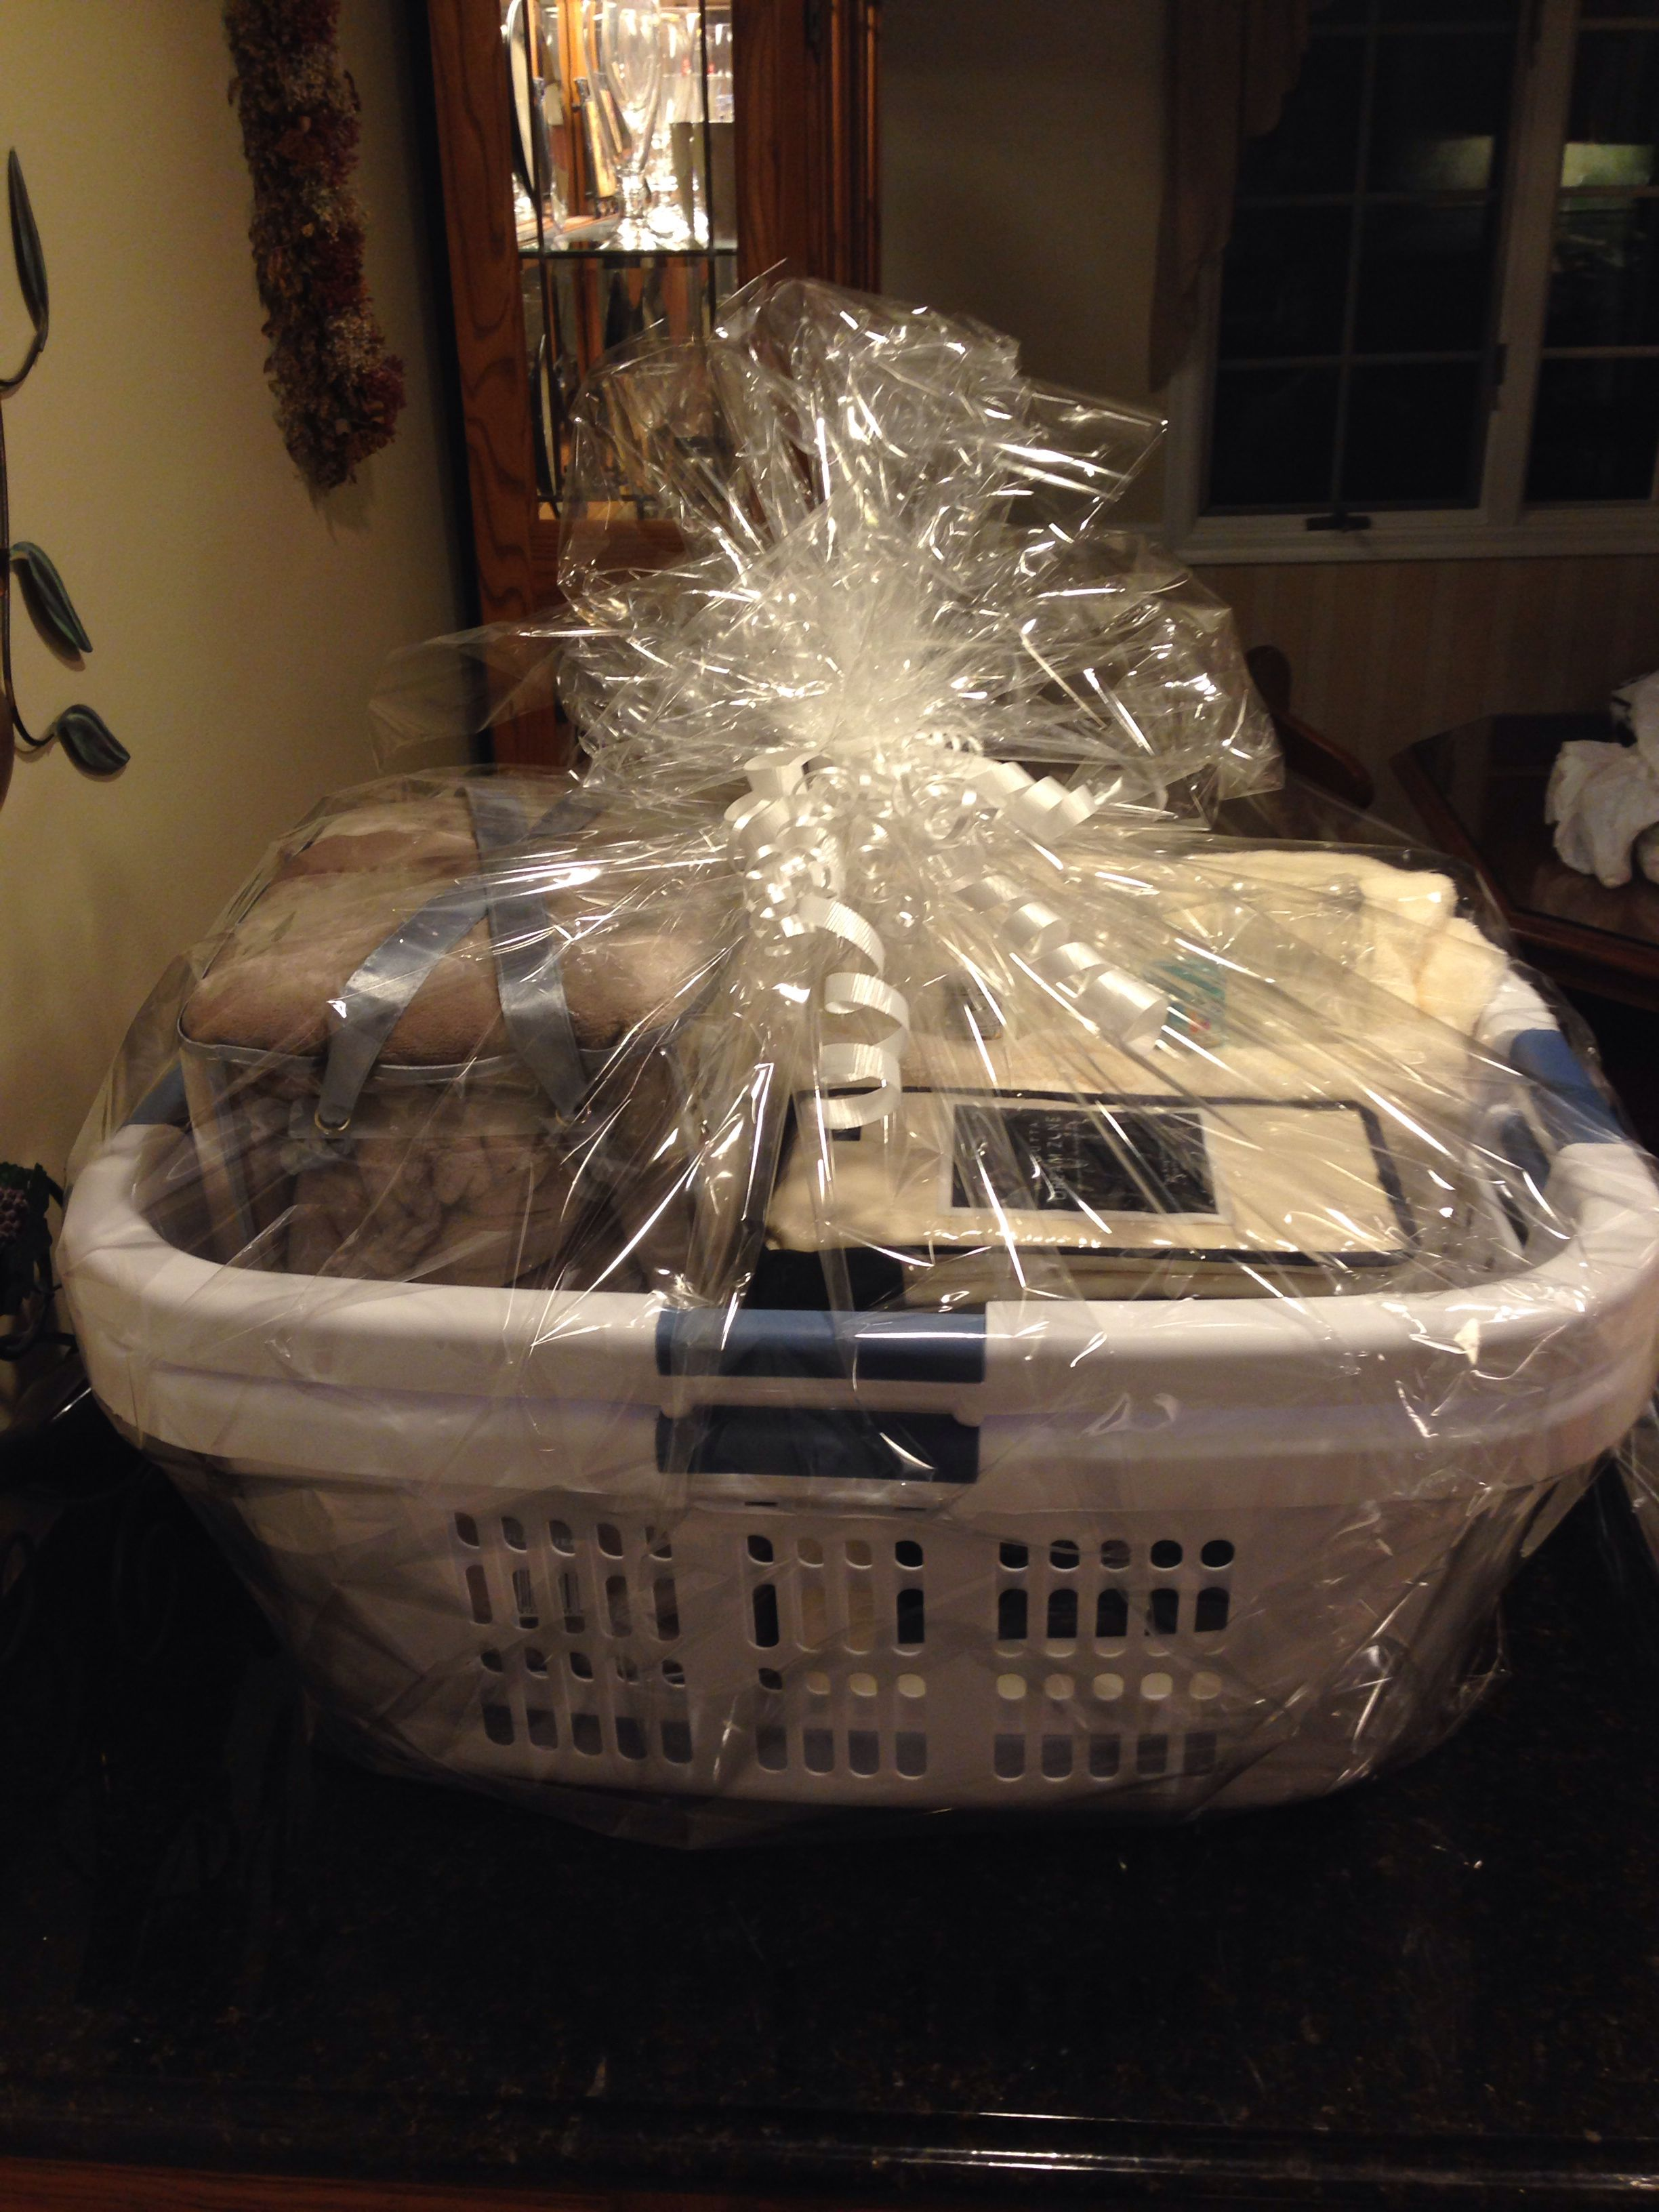 bridal shower themes without gifts%0A Laundry basket with gifts for Bridal Shower